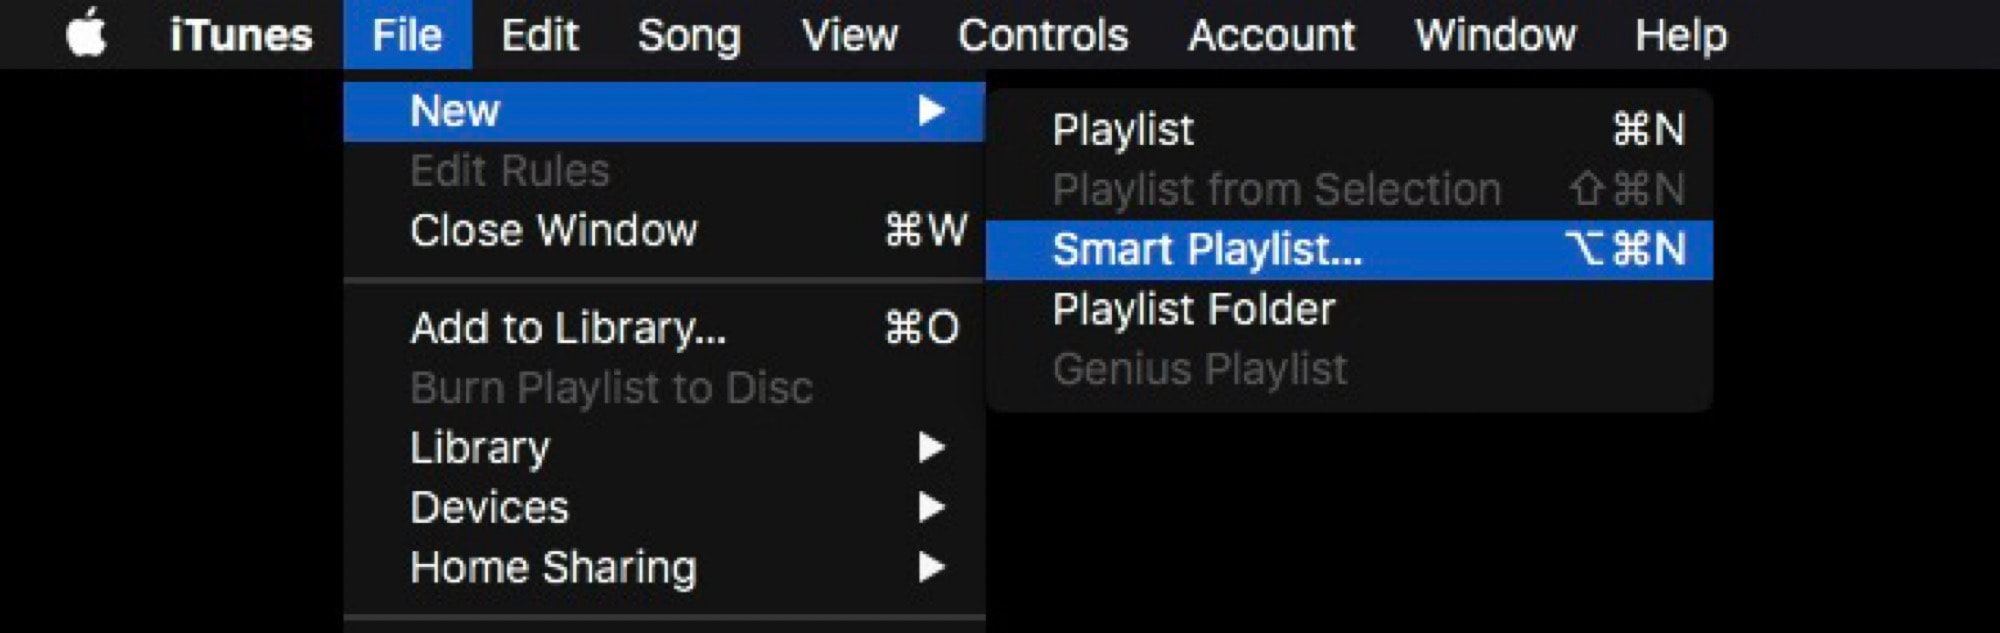 Create a new Smart Playlist in iTunes to get started.